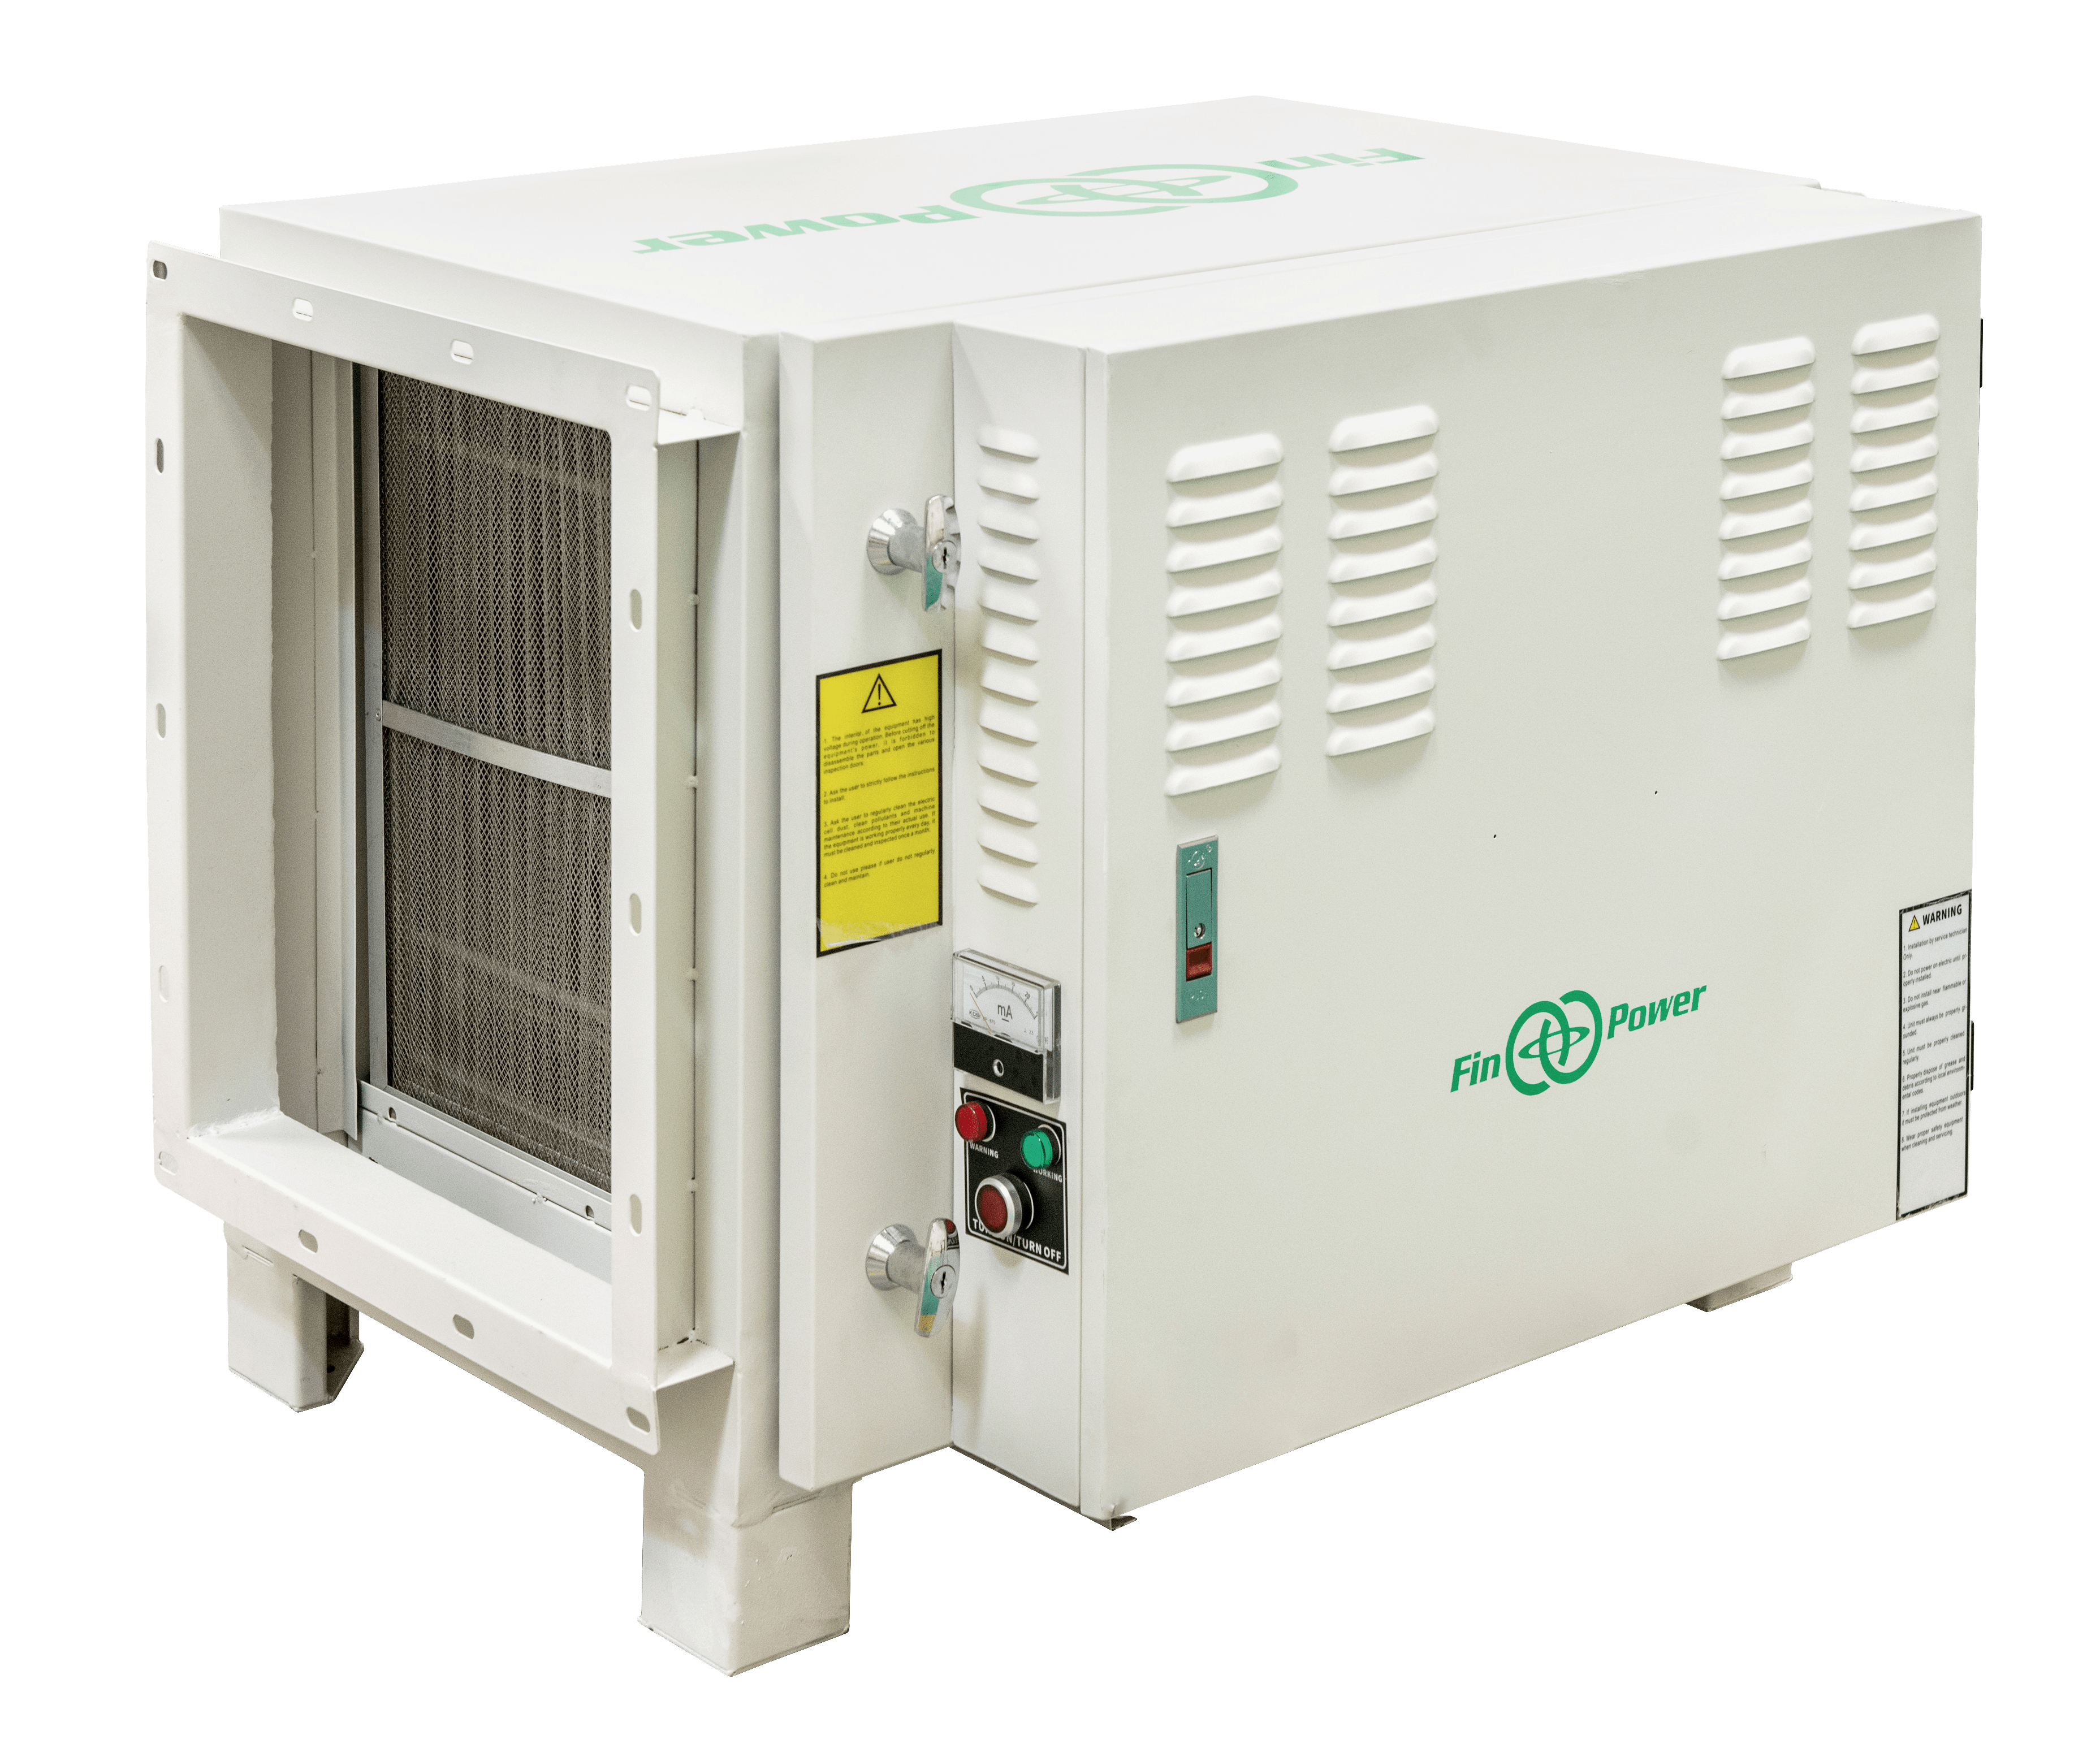 Dry Air Scrubber - Air Conditioning Manufacturer   Finpower